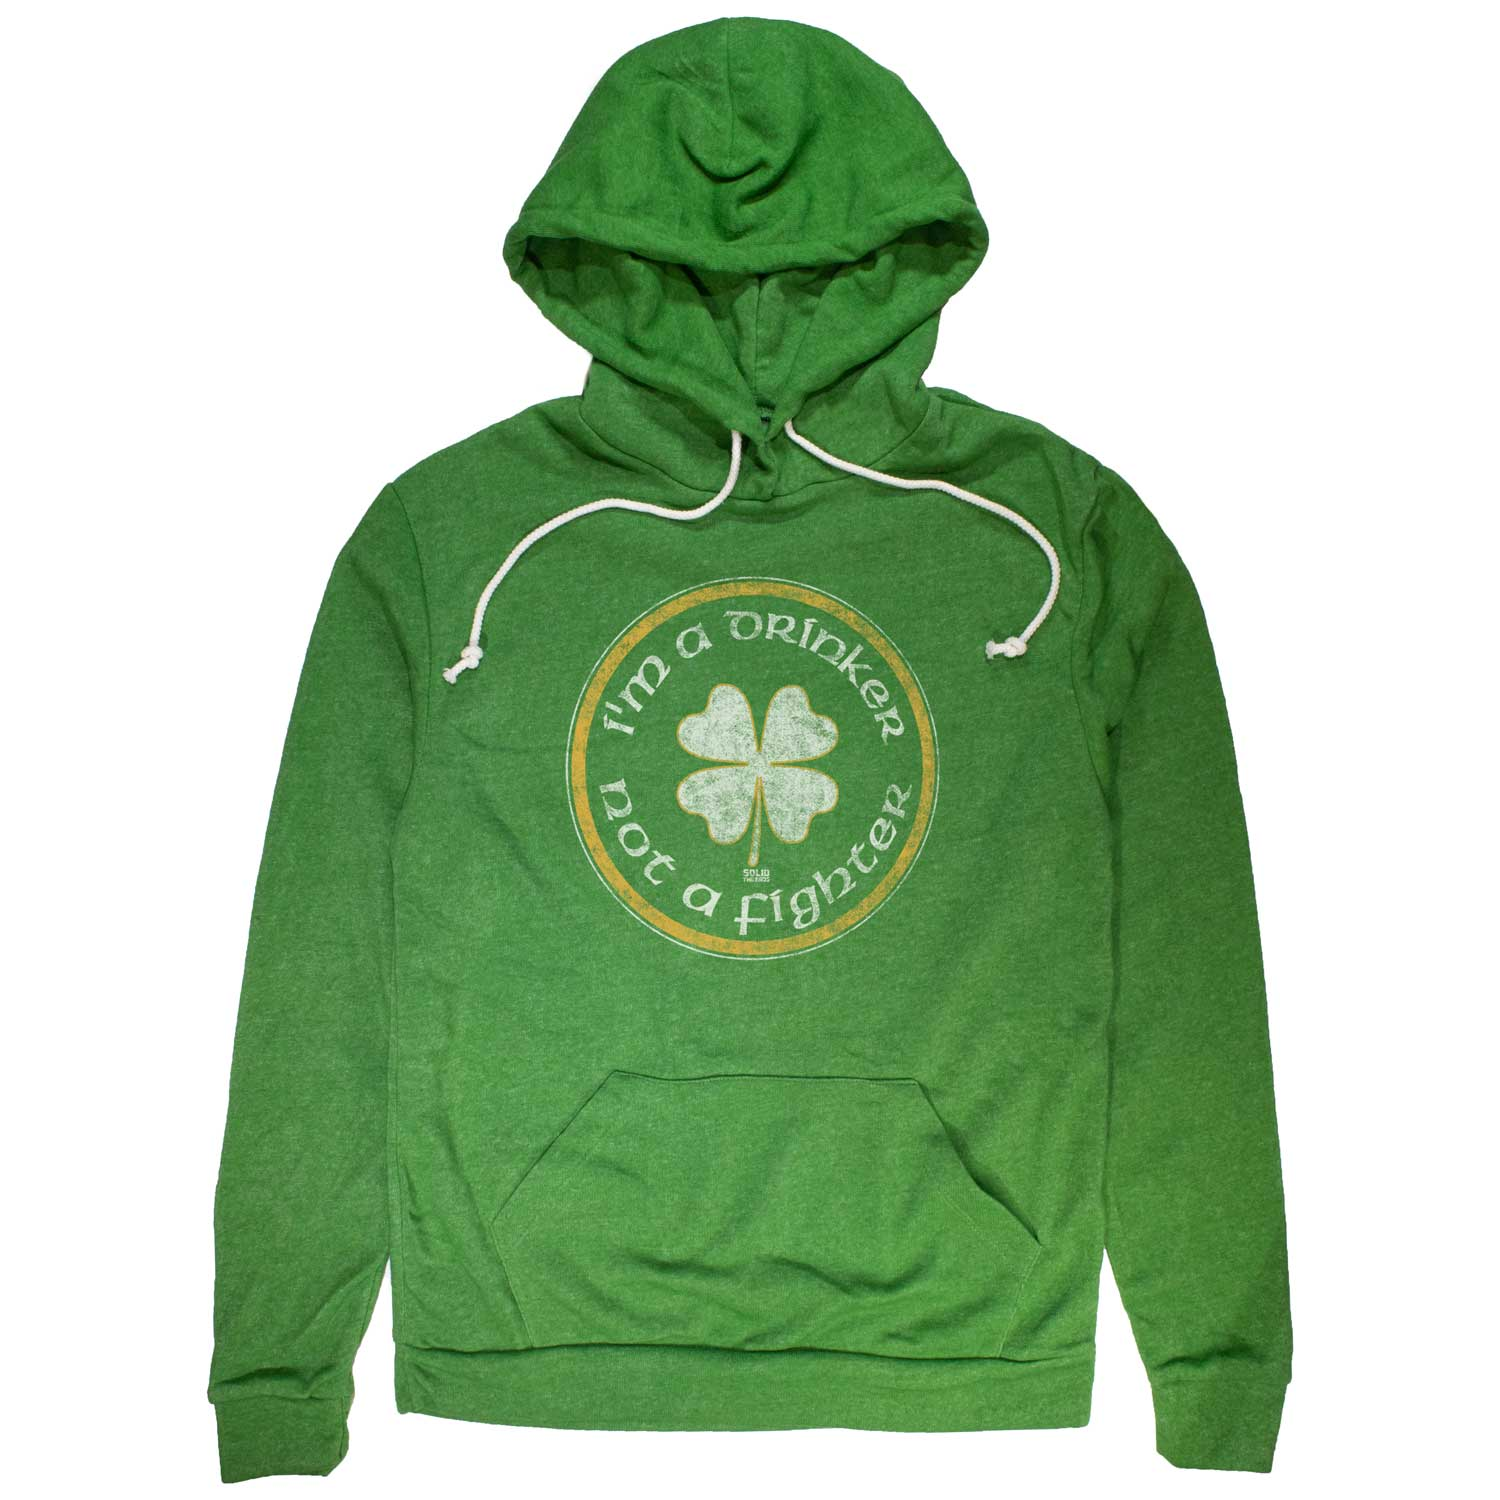 Drinker Not A Fighter Vintage Pullover Hoodie | Funny  Irish St. Paddy's Graphic | Solid Threads